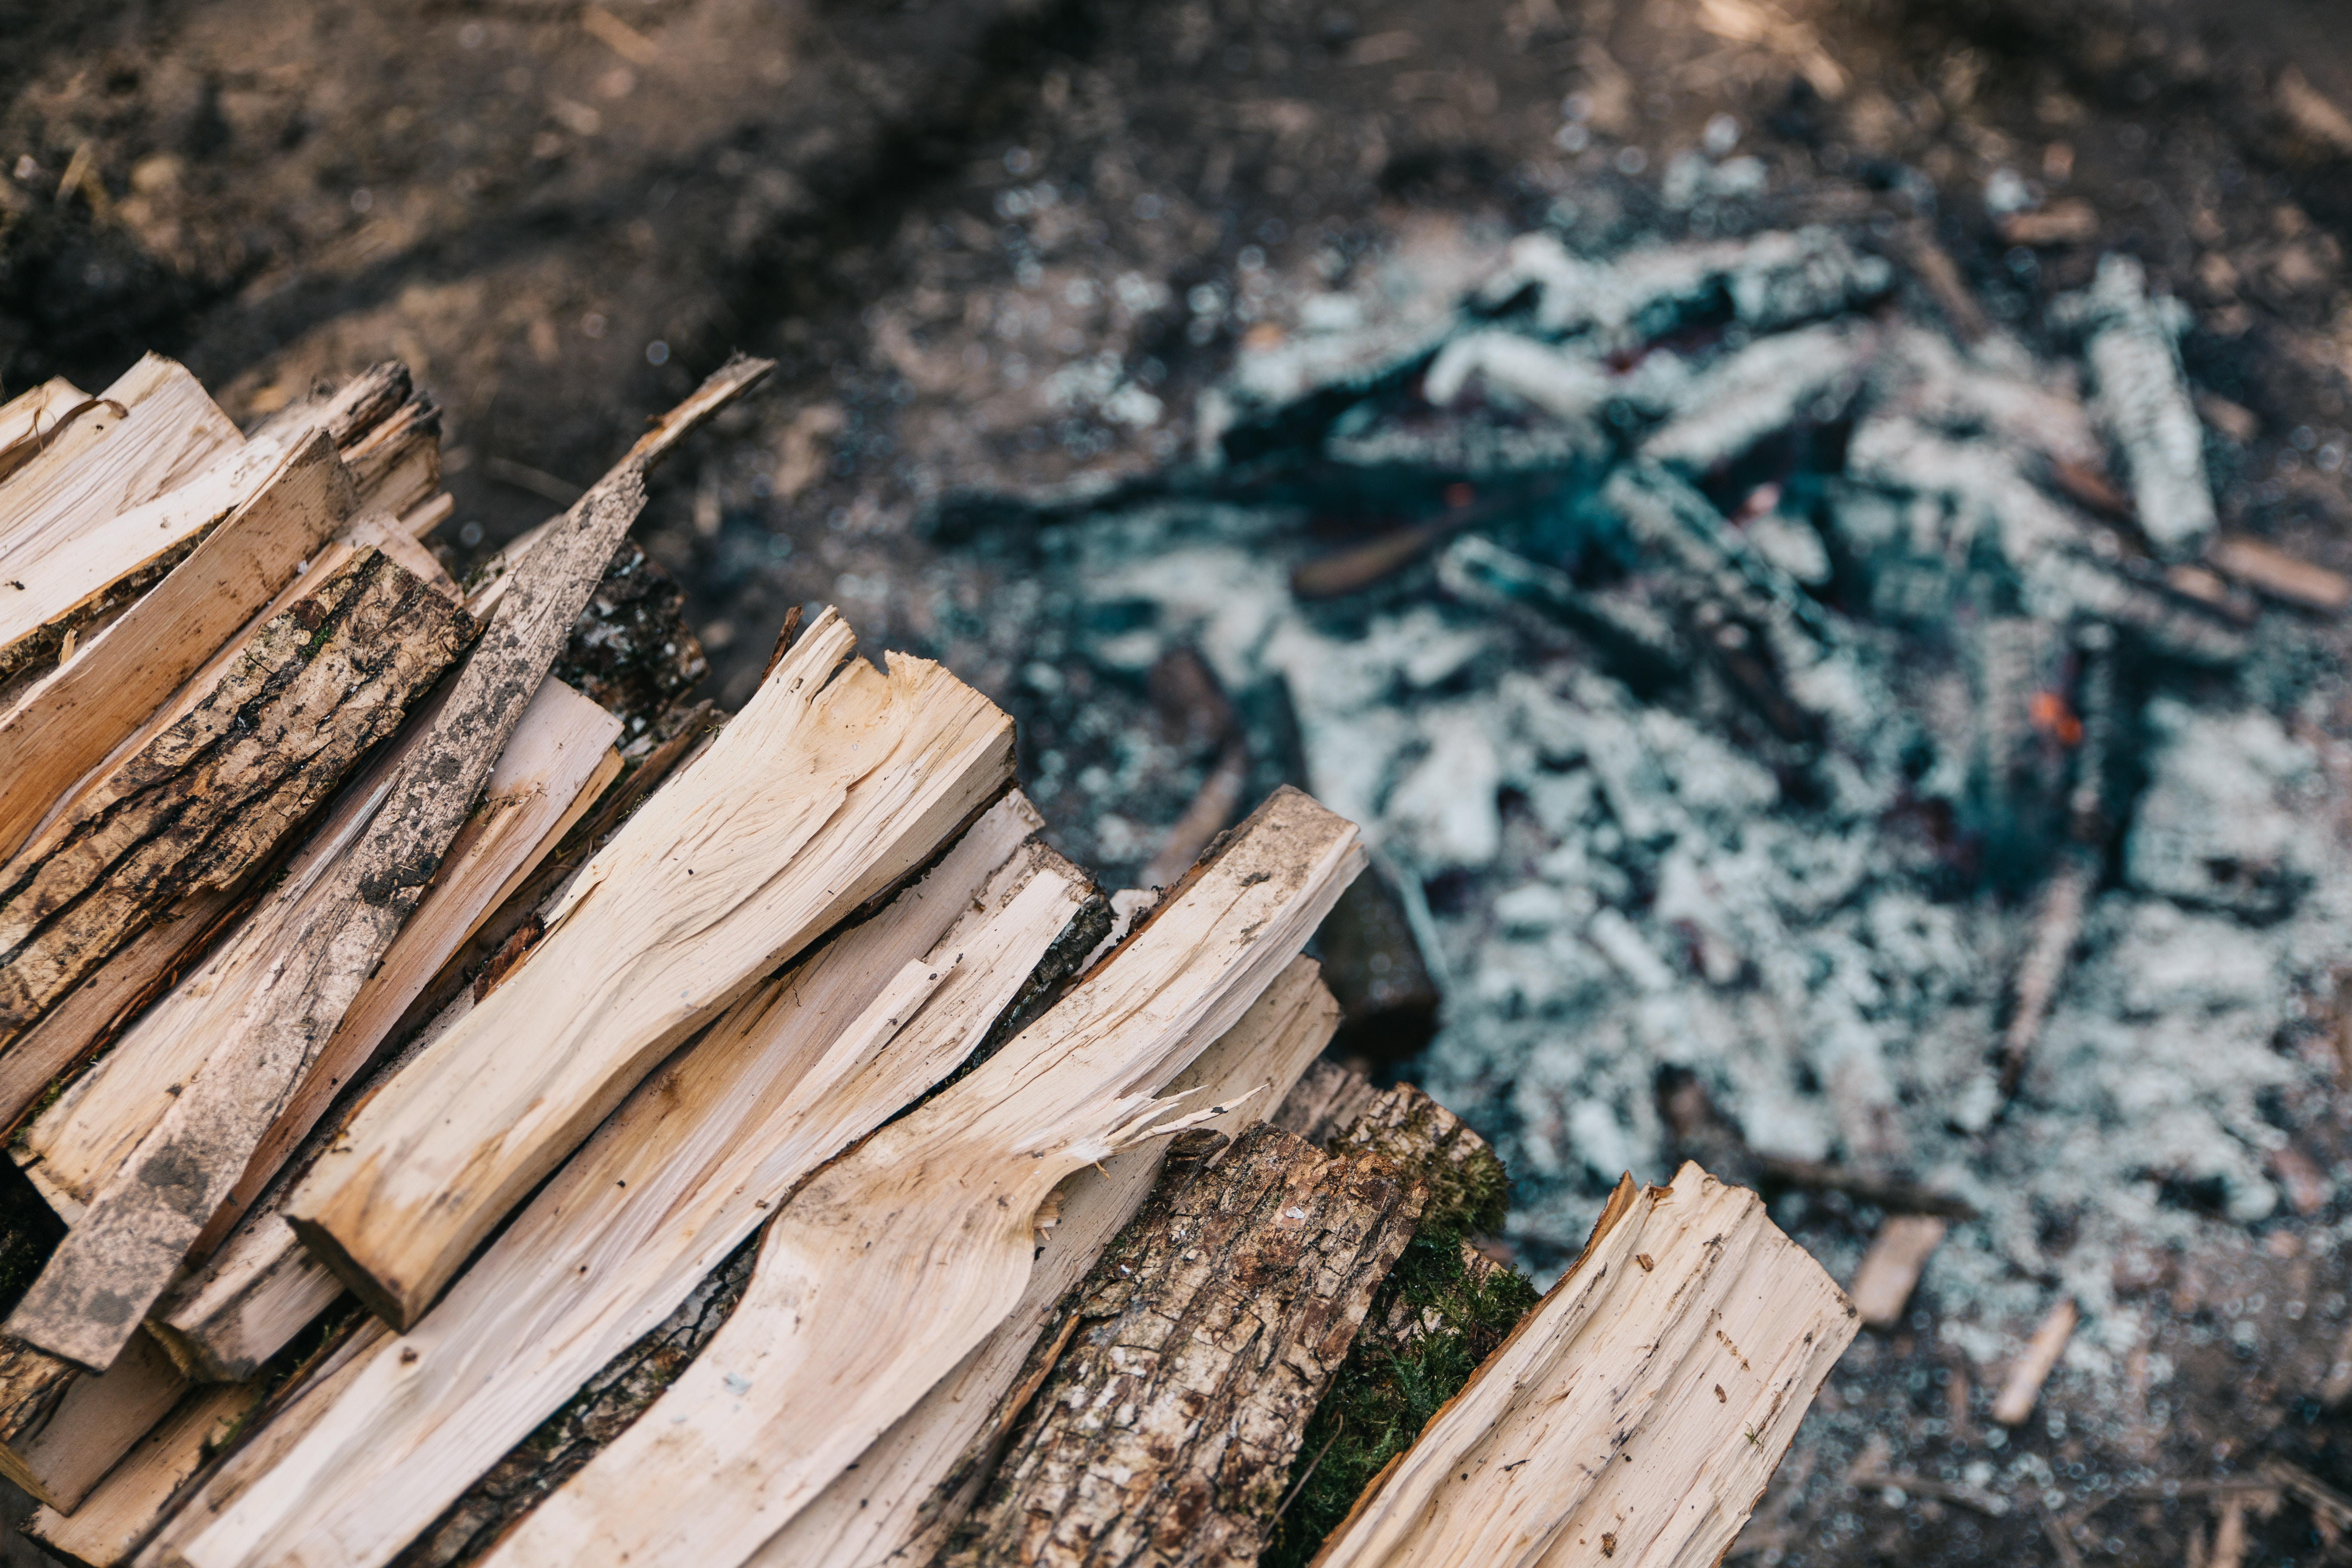 Best uses for wood ash